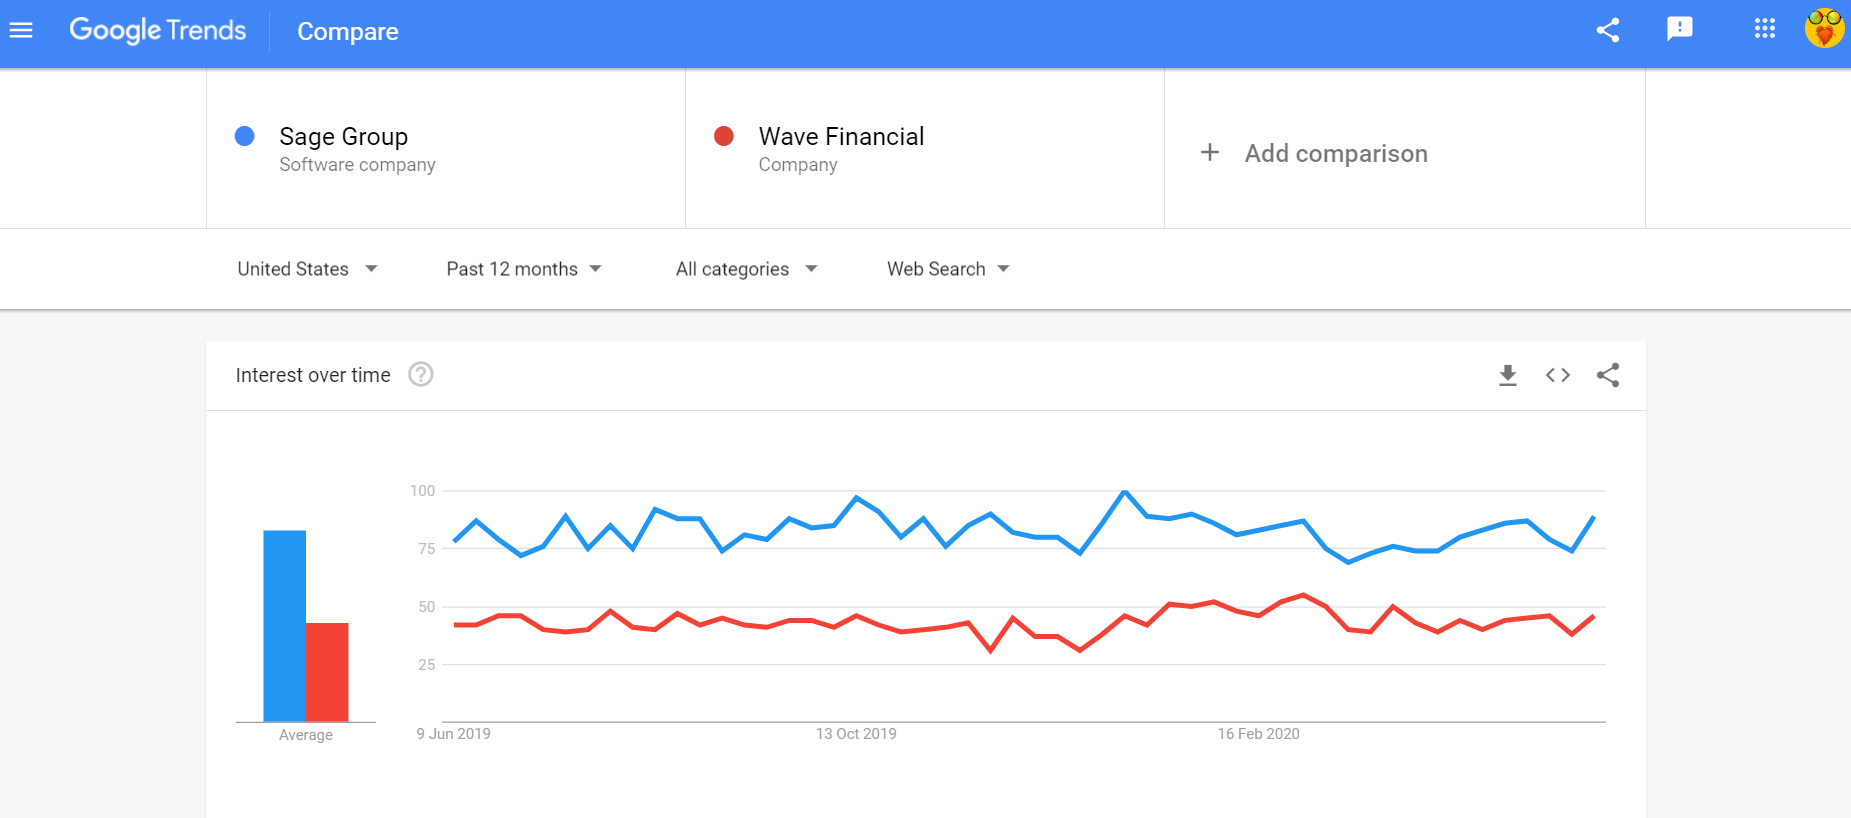 Sage Group vs Wave Financial trends comparison